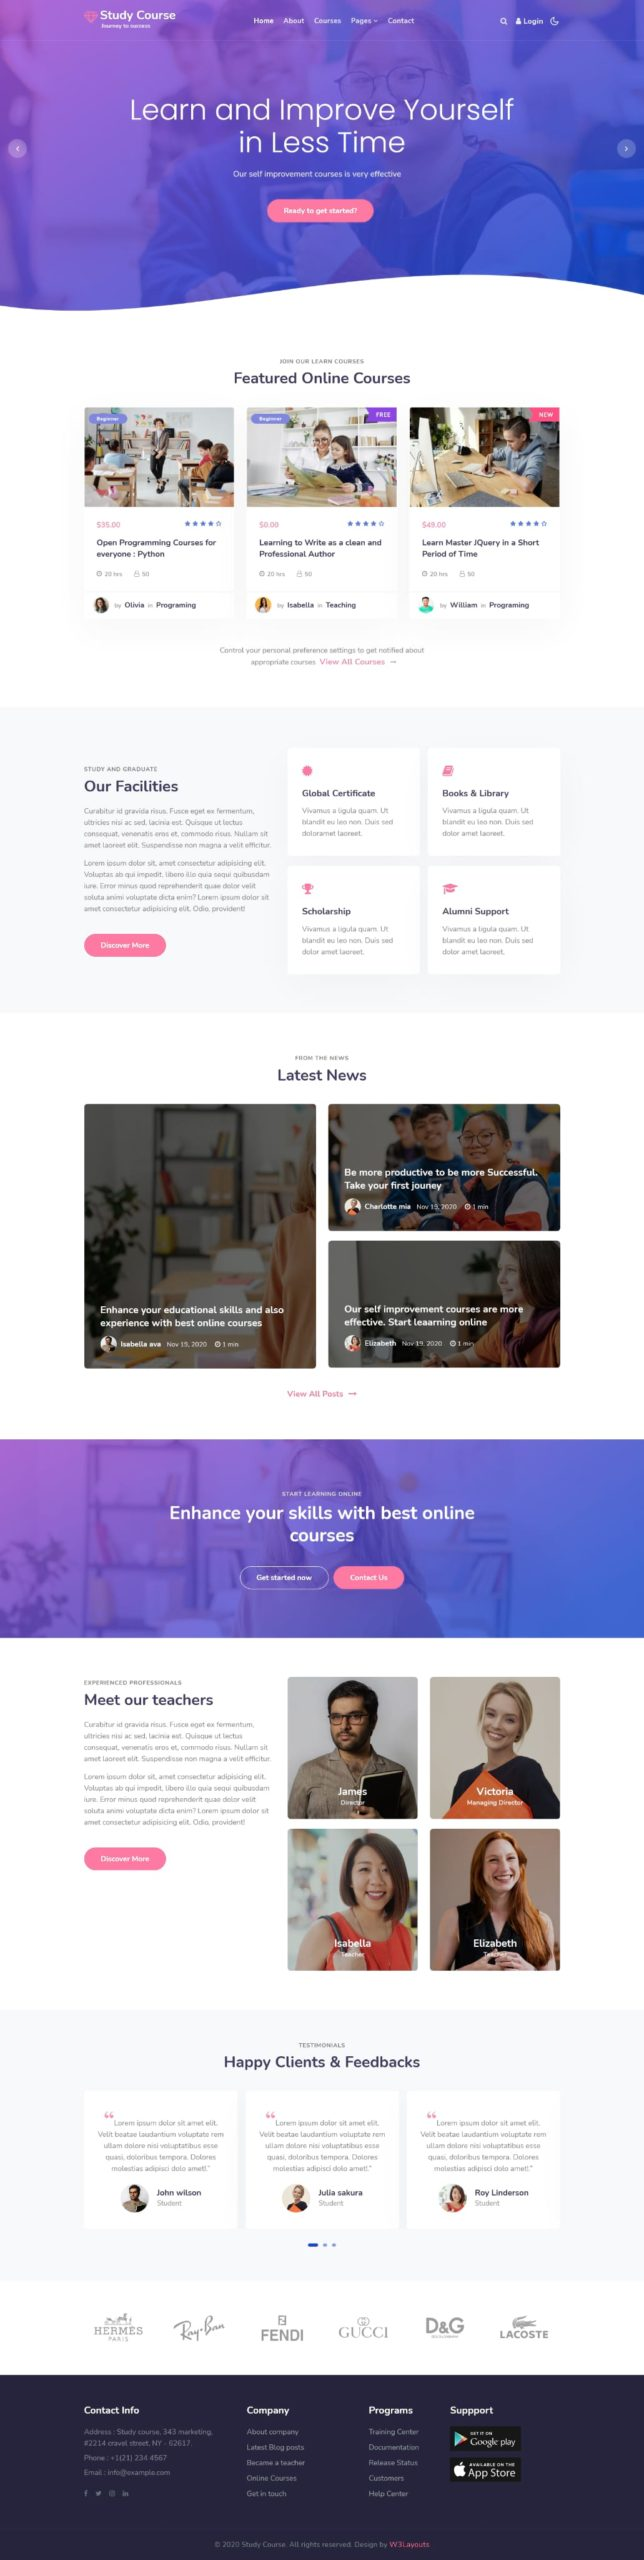 consultant online education website template home page